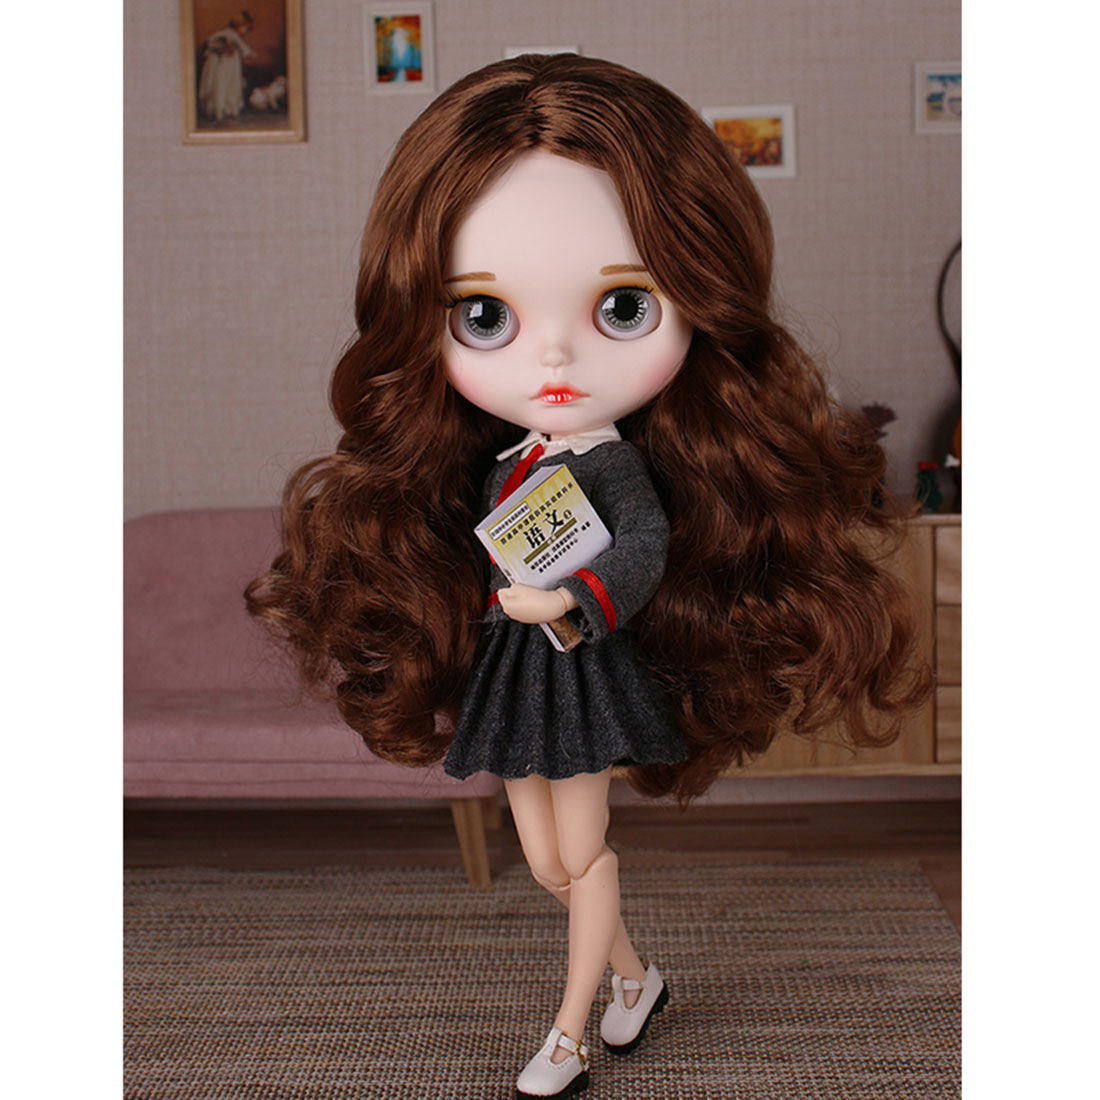 19 Joints 1/6 Matte Makeup Big Eyes Doll with Full Clothes and 9Pair Hands Model Blyth  Dolls Girls Gift - Brown Curly Hair